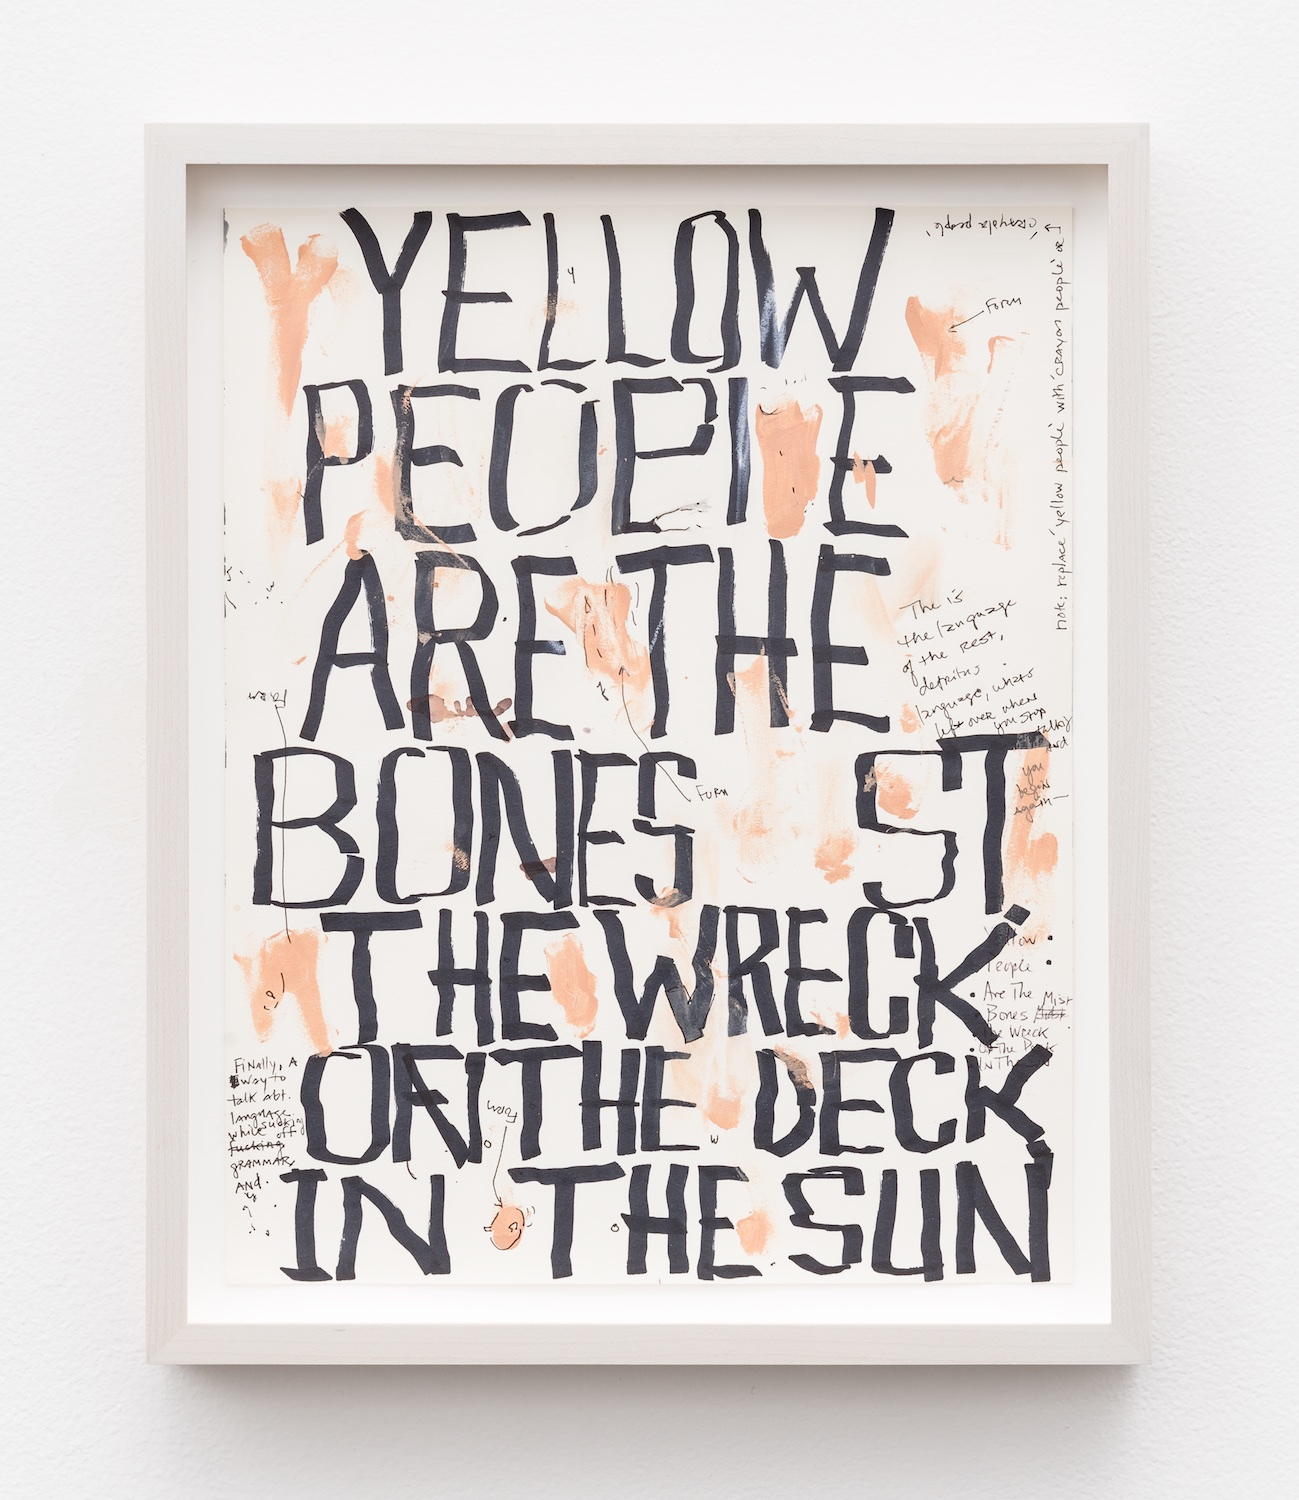 William Pope.L  Yellow People Are The Bones St. The Wreck On The Deck In The Sun  2010 Mixed media on paper 11 ½h x 9w in WP005